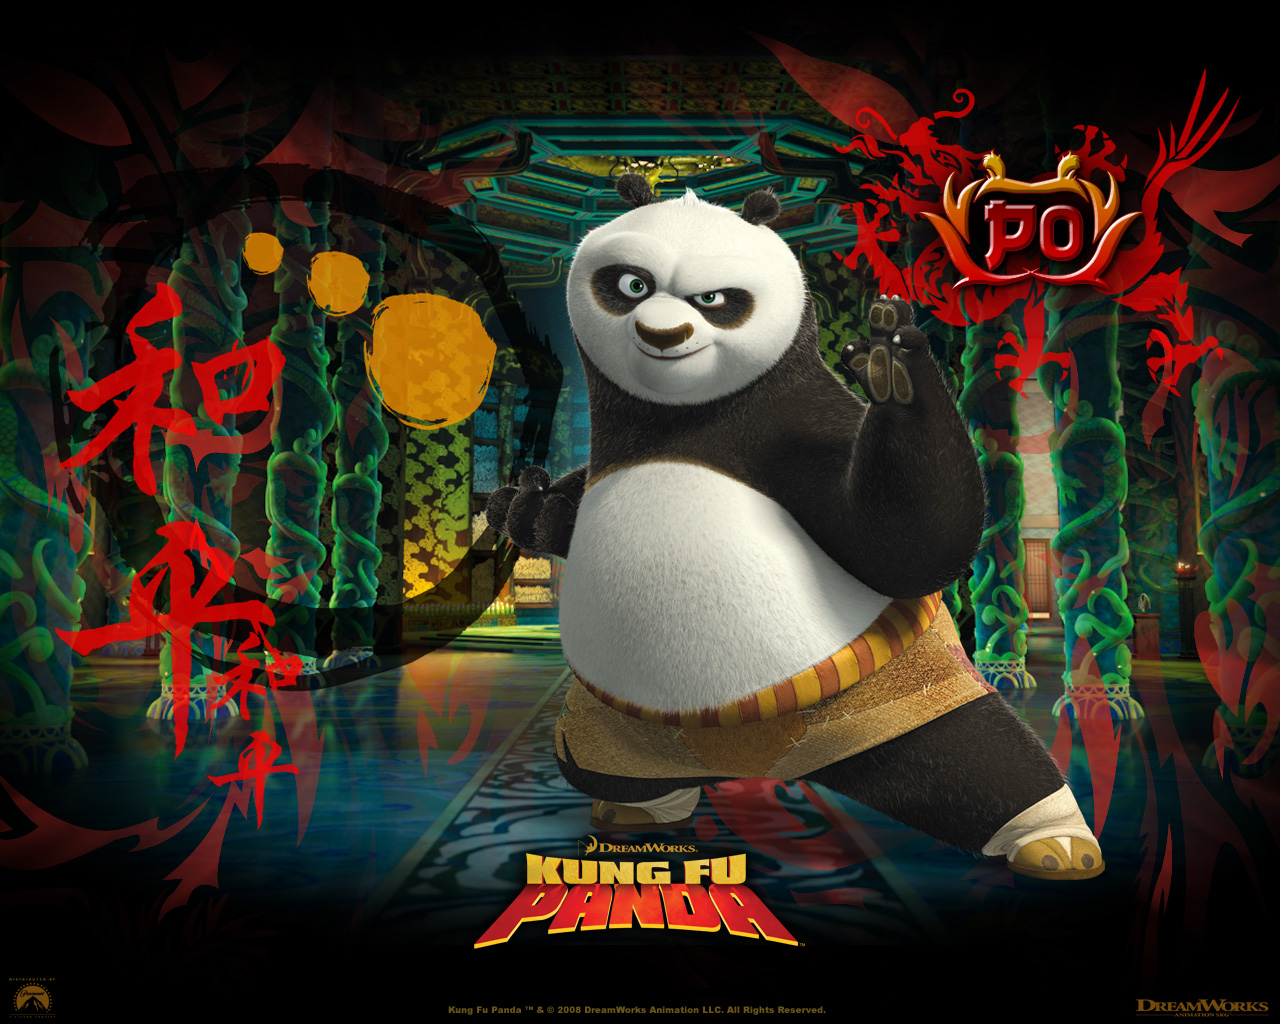 Kung fu panda iphone wallpaper - Po The Panda From Kung Fu Panda Wallpaper Click Picture For High Resolution Hd Wallpaper